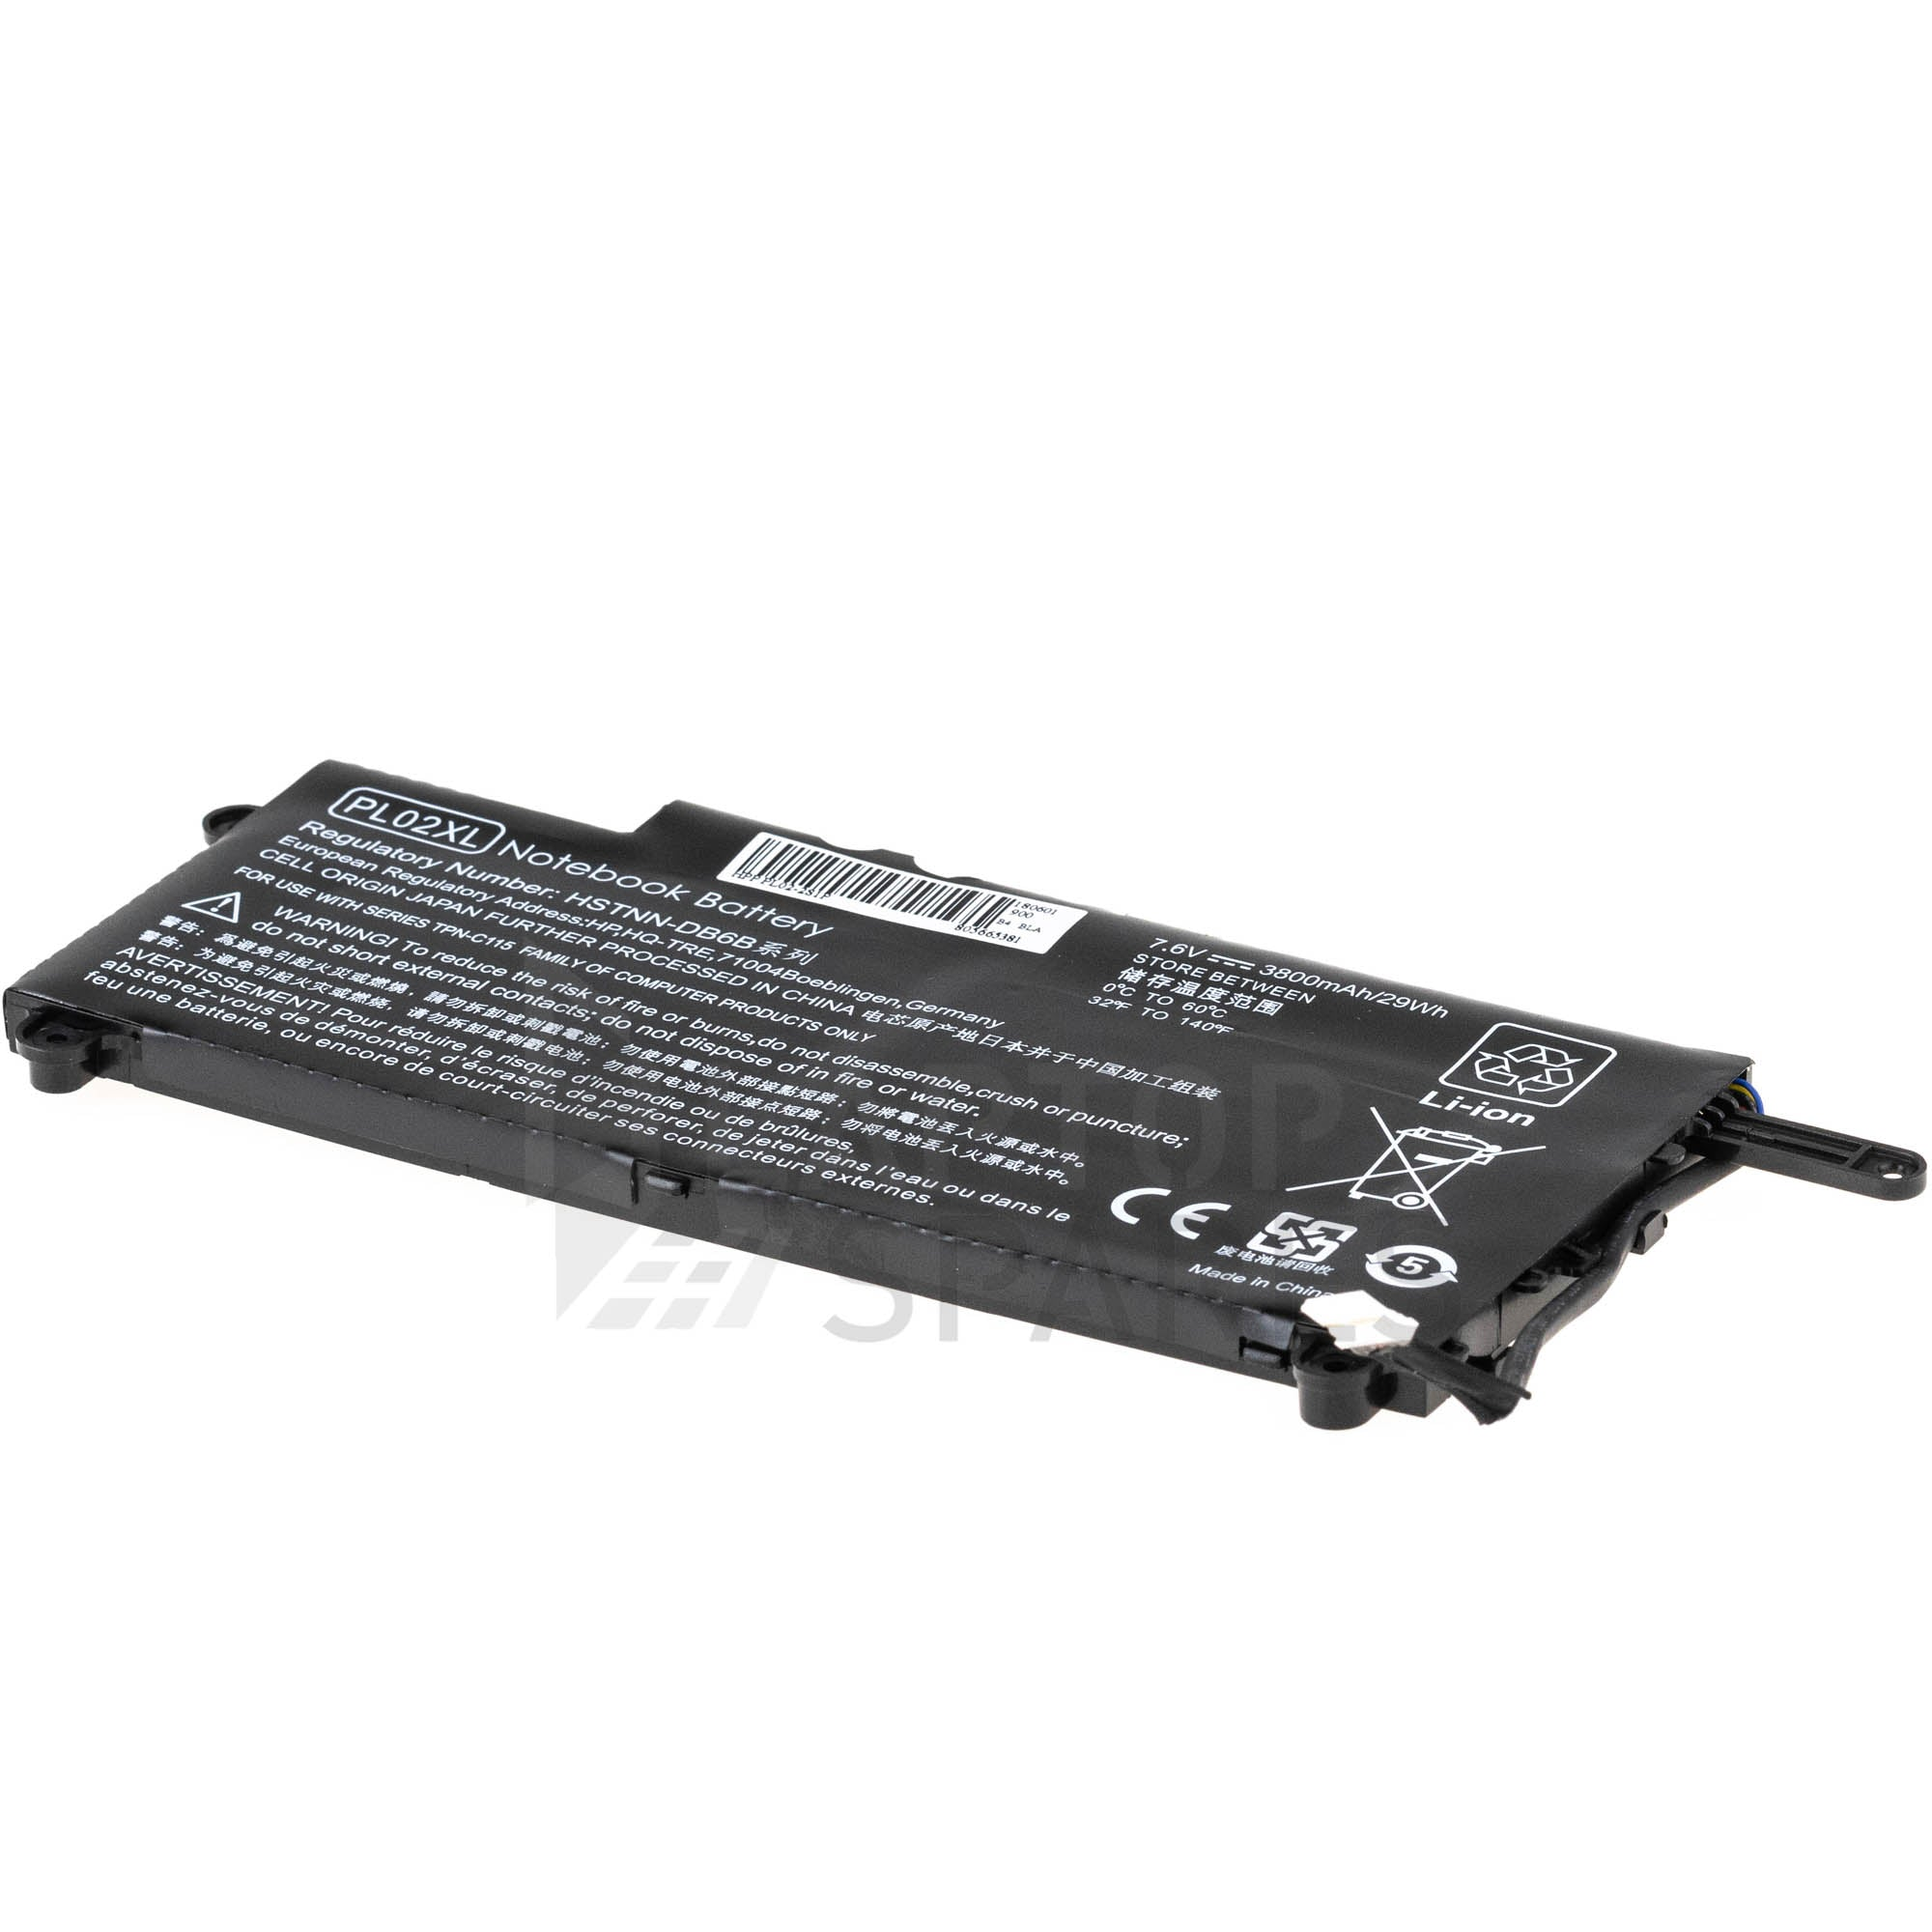 HP Pavilion 11 N X360 PL02XL 3800mAh 4 Cell Battery